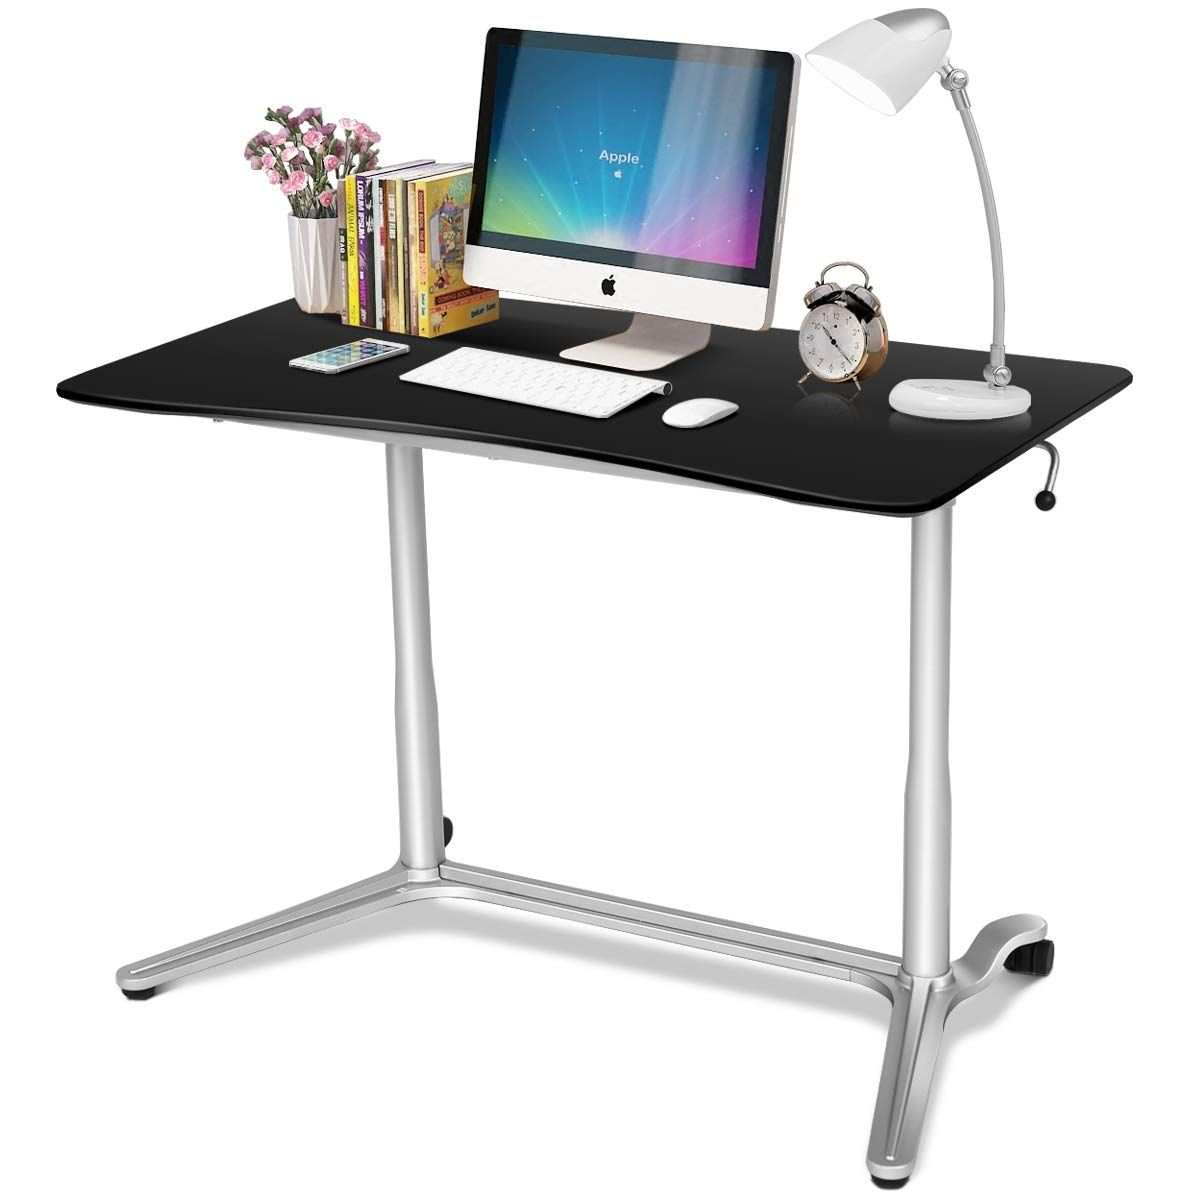 Tangkula Standing Desk Computer Desk Height Adjustable Sit Stand